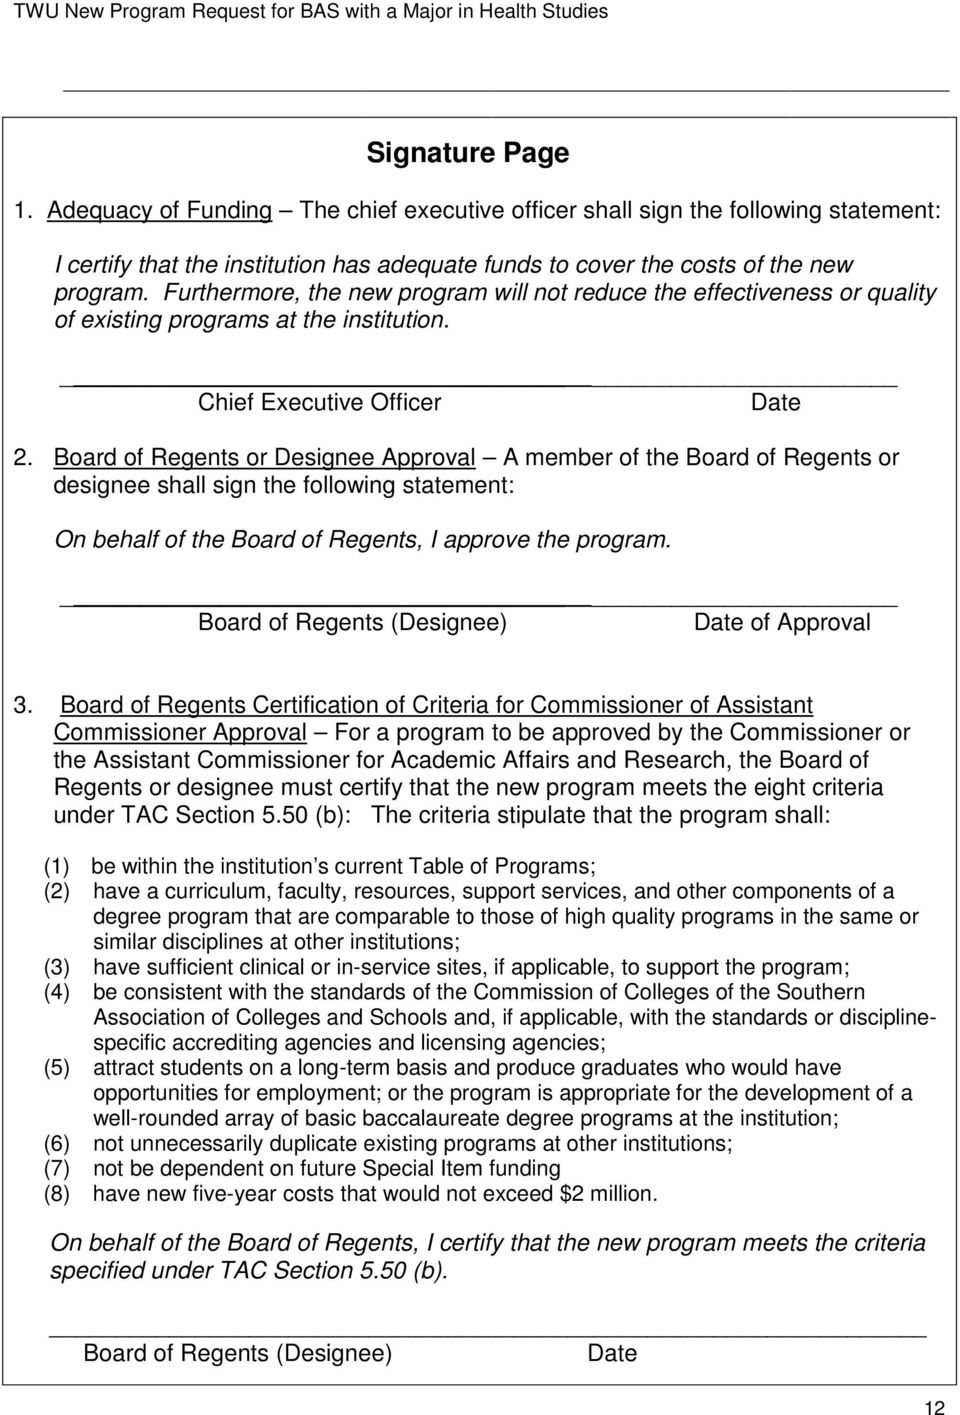 Board of Regents or Designee Approval A member of the Board of Regents or designee shall sign the following statement: On behalf of the Board of Regents, I approve the program.